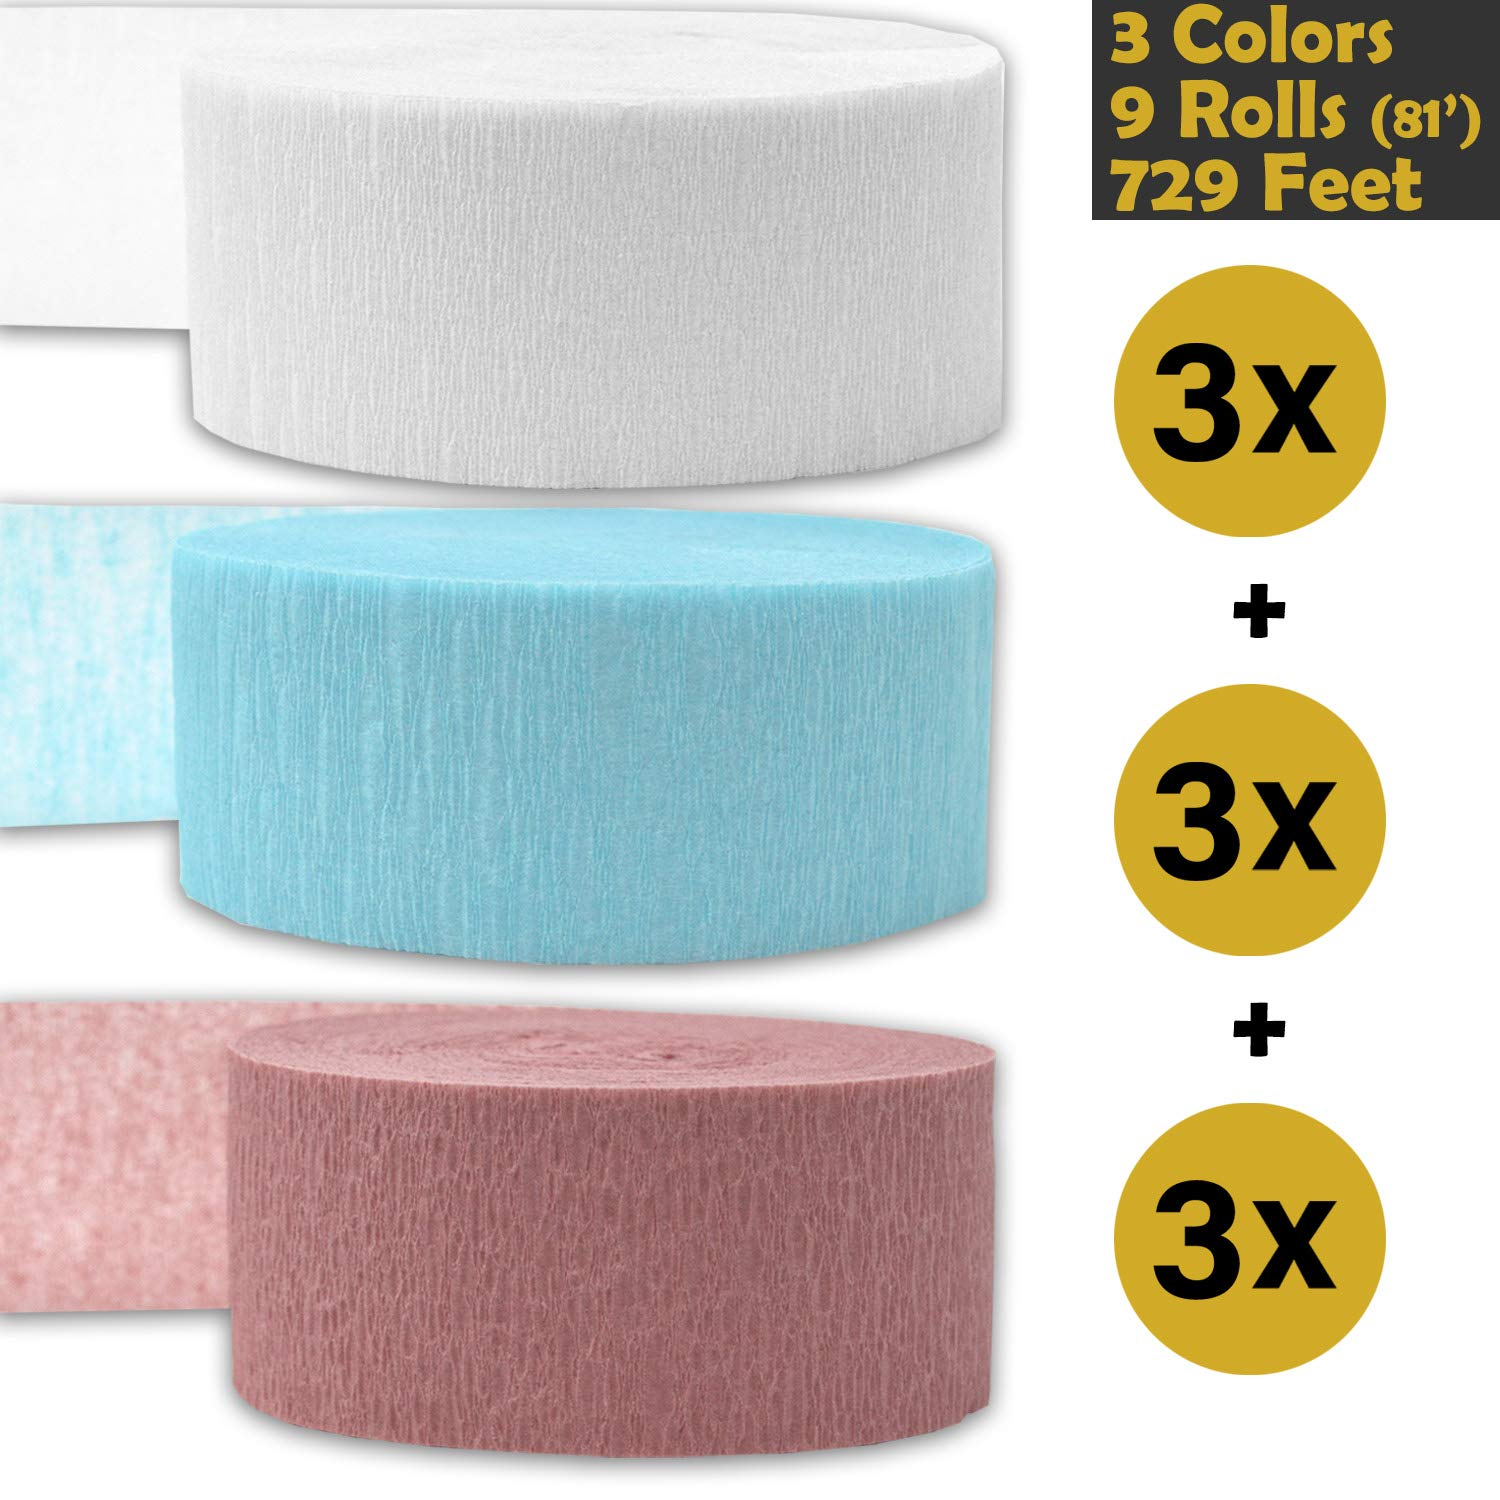 243 per color English Rose 9 rolls Bleed Resistant White 739 ft Flame Resistant Crepe Party Streamers - For party Decorations and Crafts Ice Blue 3 rolls per color, 81 foot each roll Made in USA 3 Colors